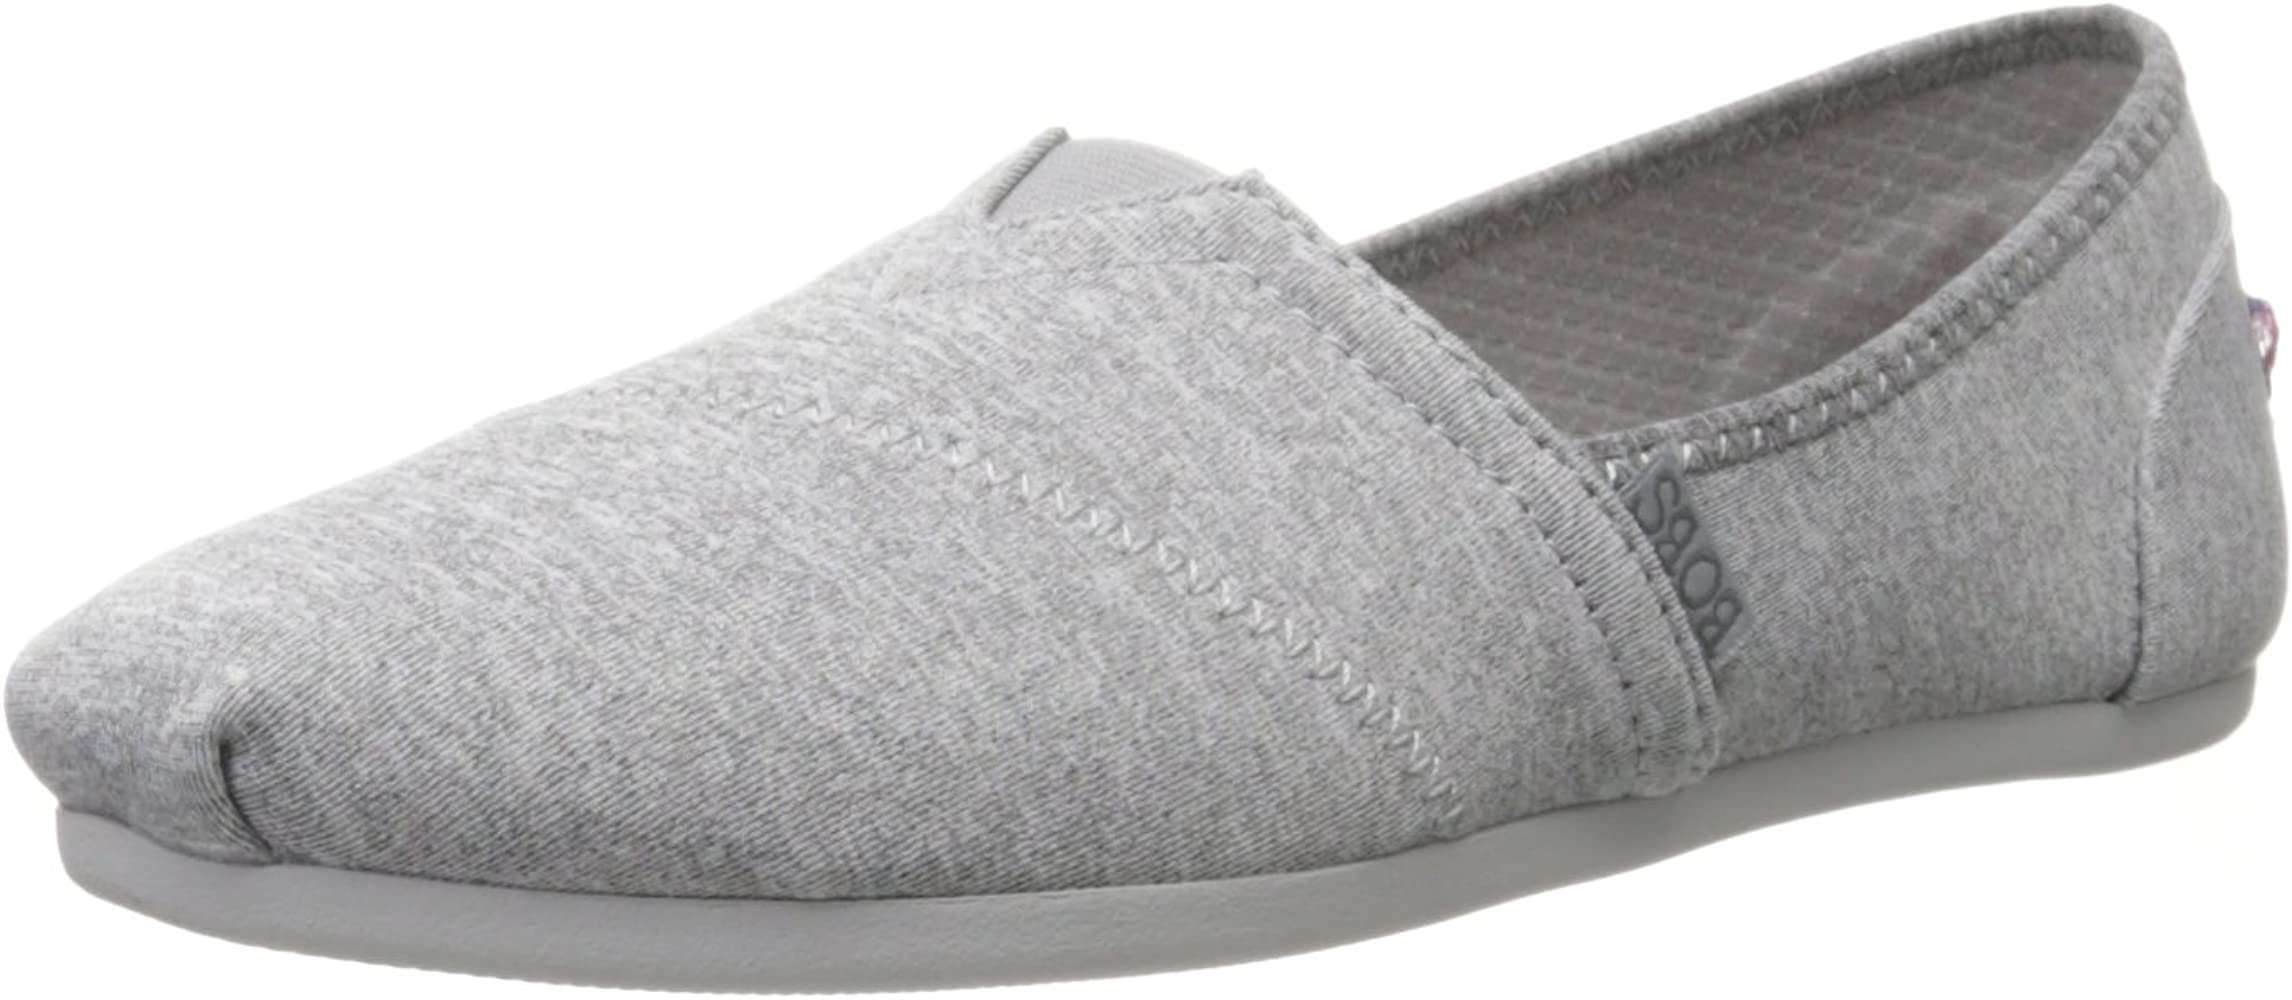 Amazon Com Bobs From Skechers Women S Bobs Plush Express